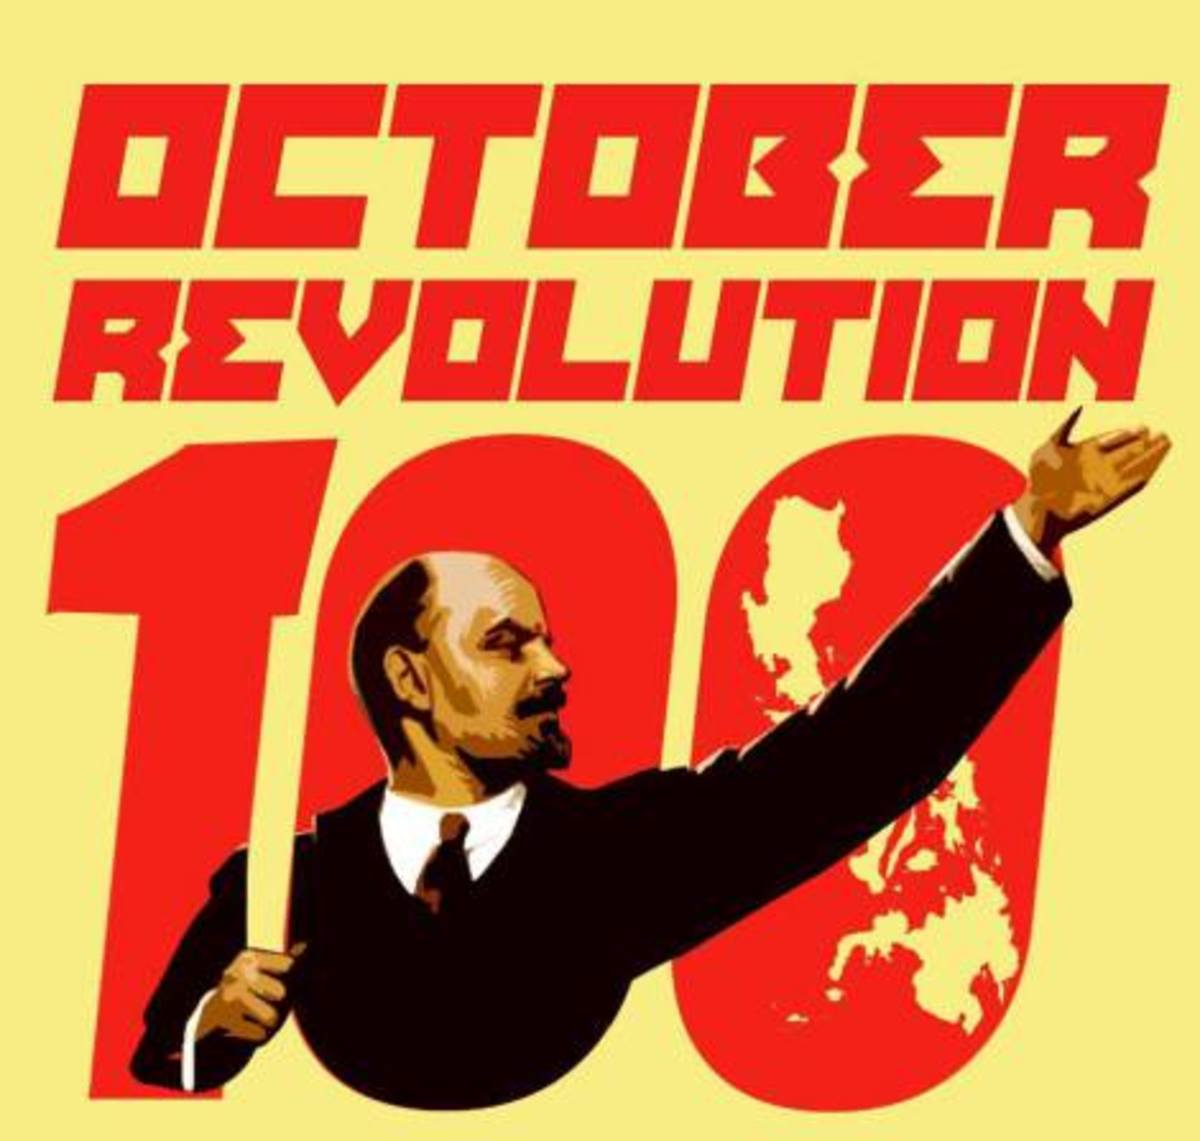 The Russian October Revolution of 1917